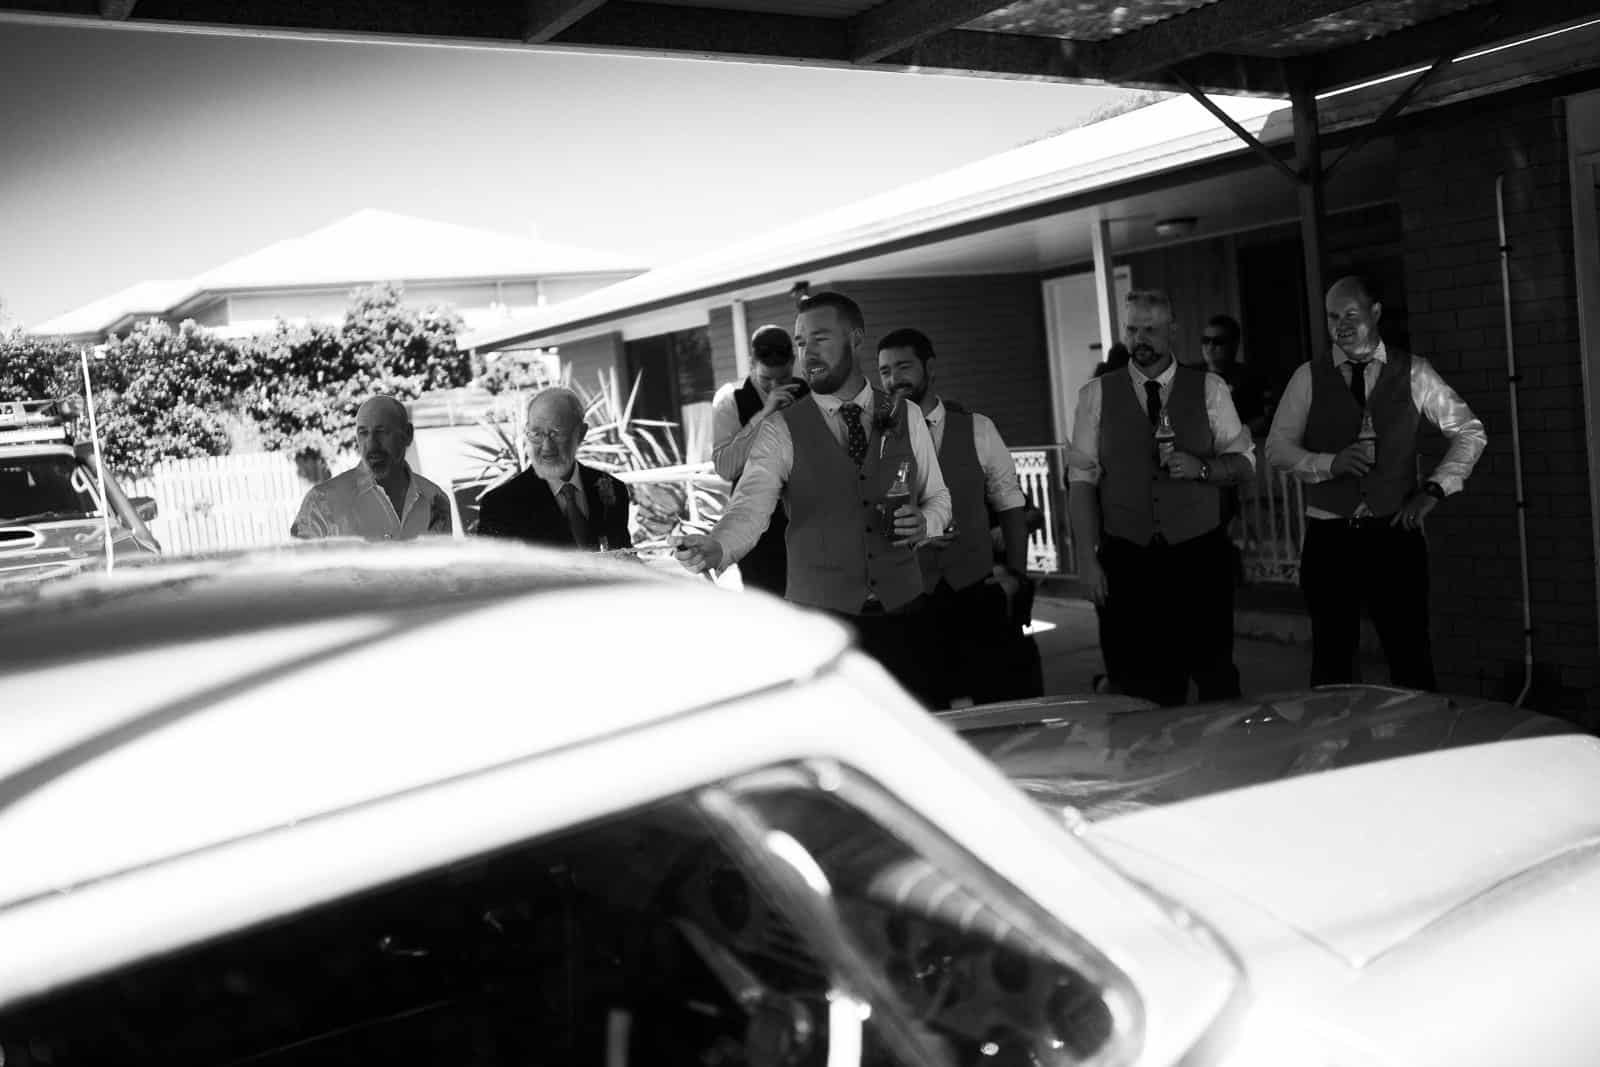 Groom washing wedding car